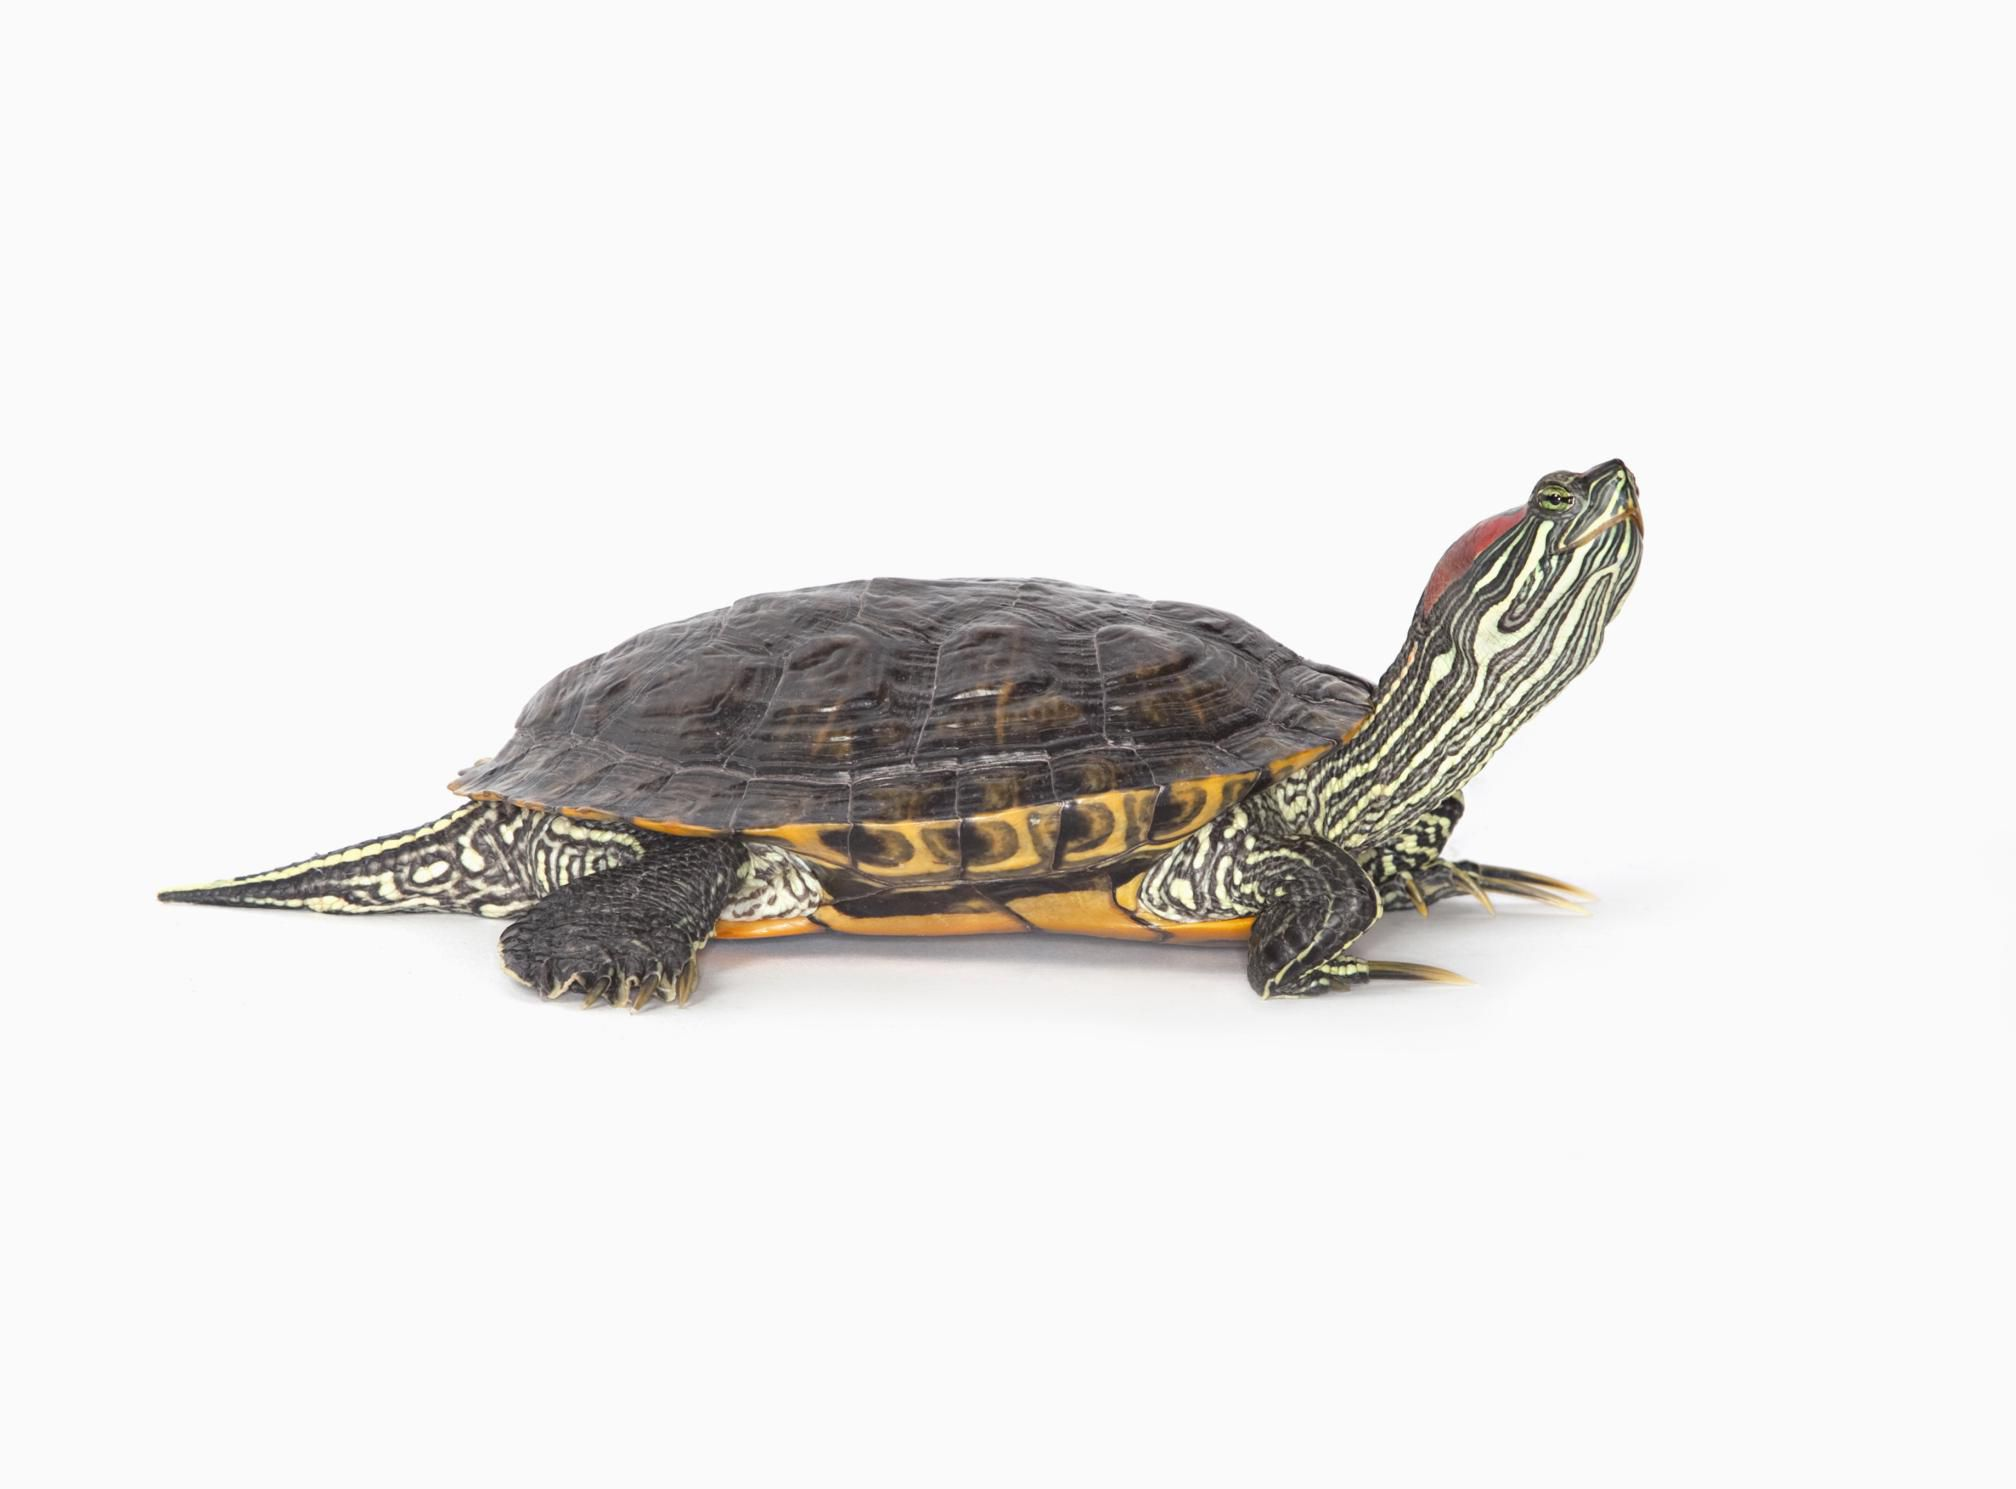 Pet turtle, a red-eared slider, white background